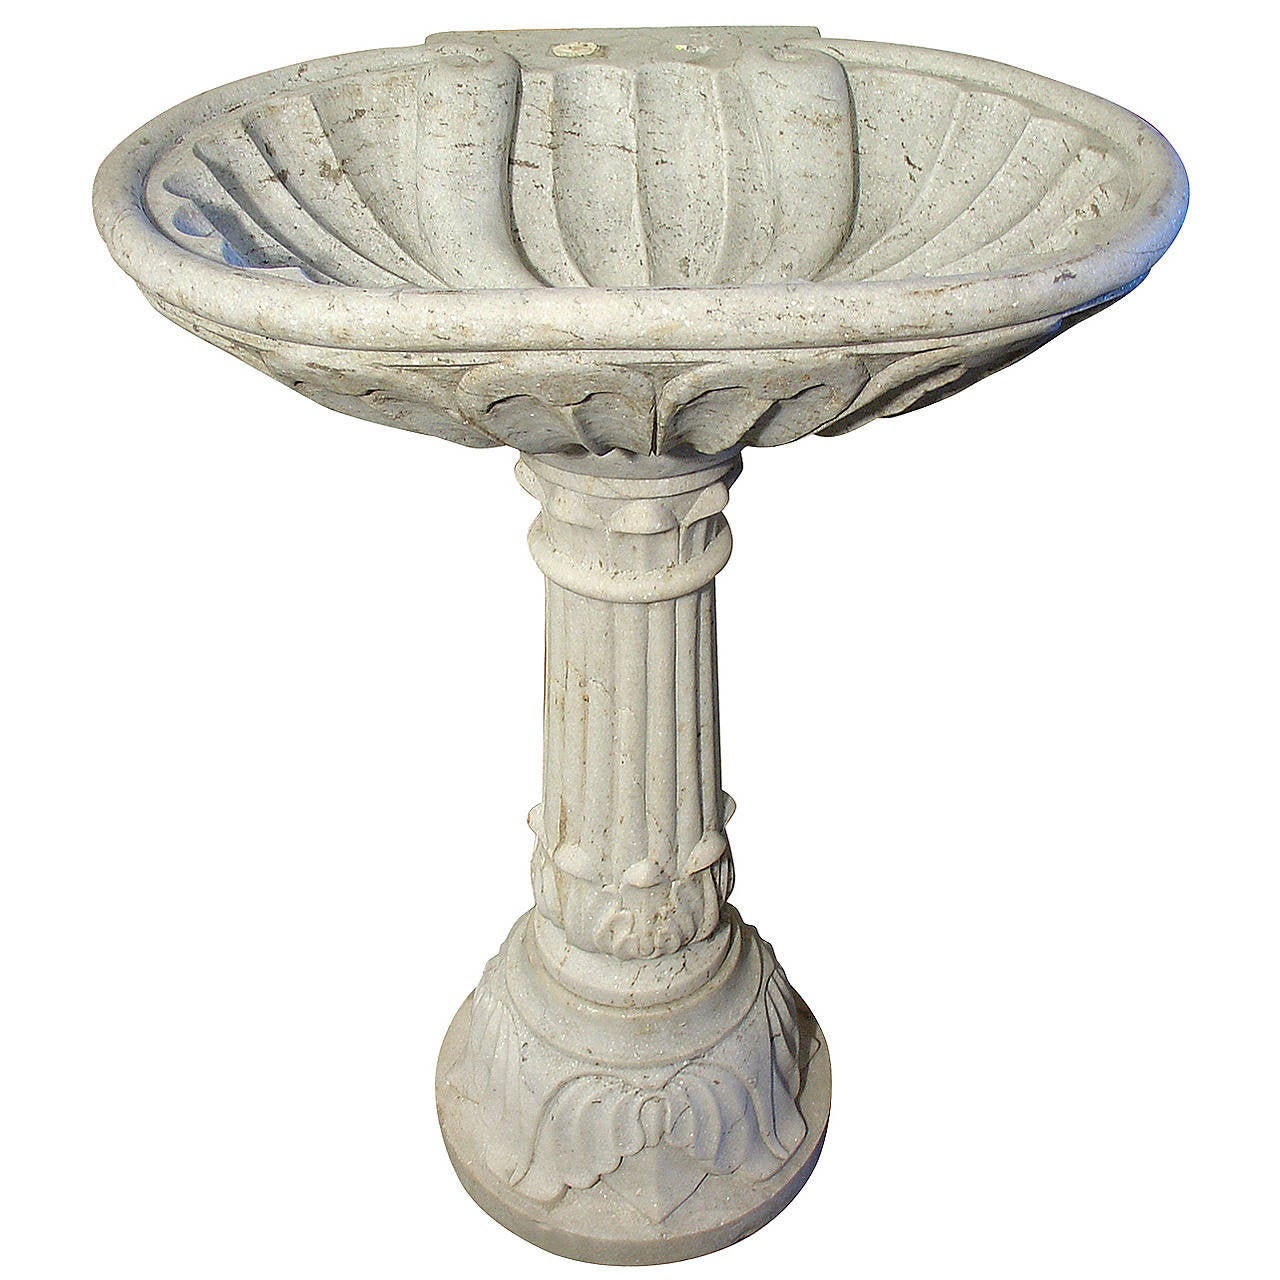 Antique Marble Sink : Antique Marble Pedestal Sink from France, Circa 1900 at 1stdibs